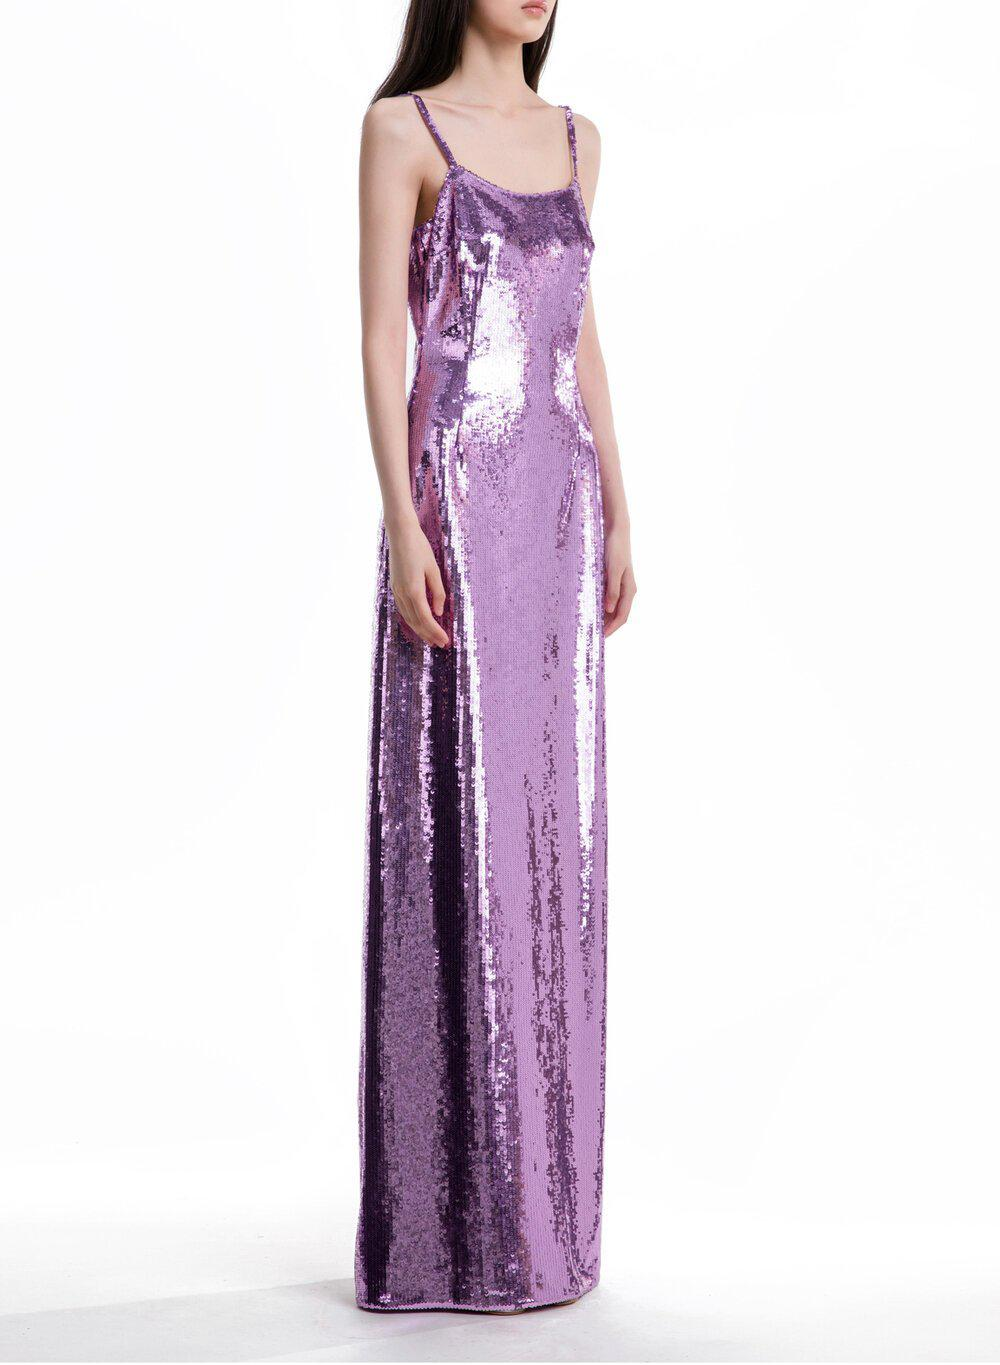 AURORA GOWN LILAC TULLE 5